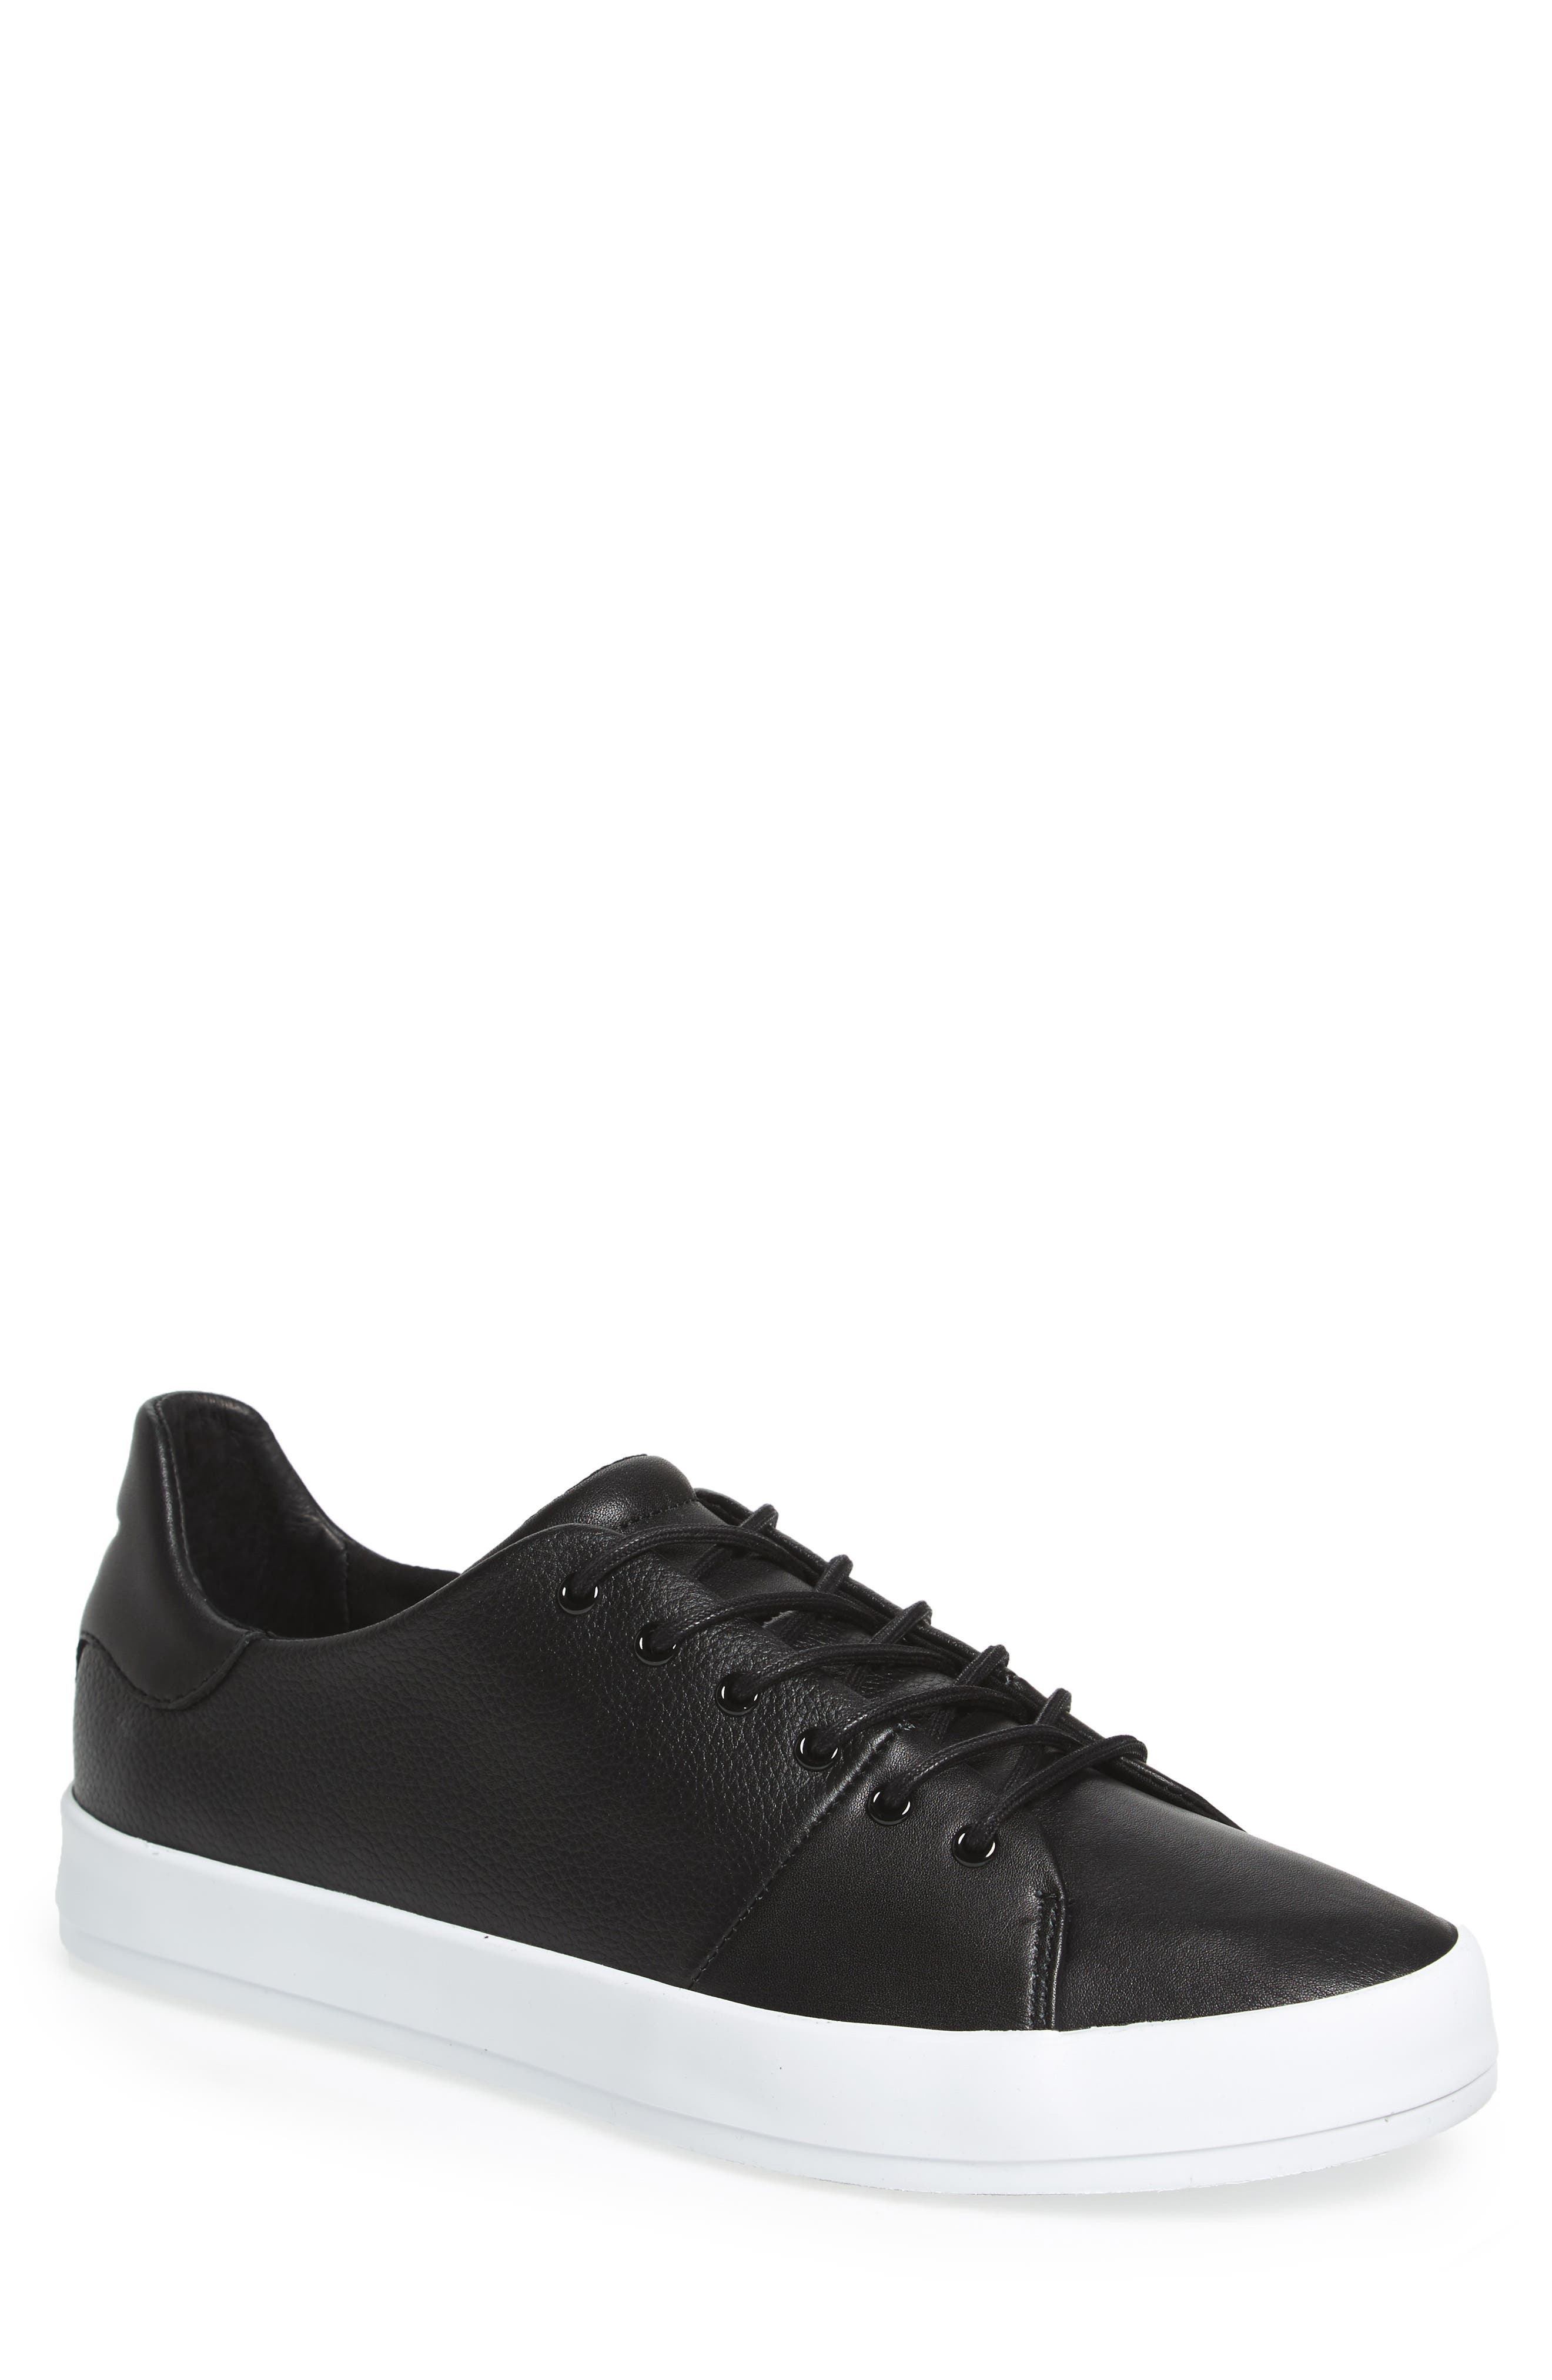 Creative Recreation Carda Low Sneaker (Men)